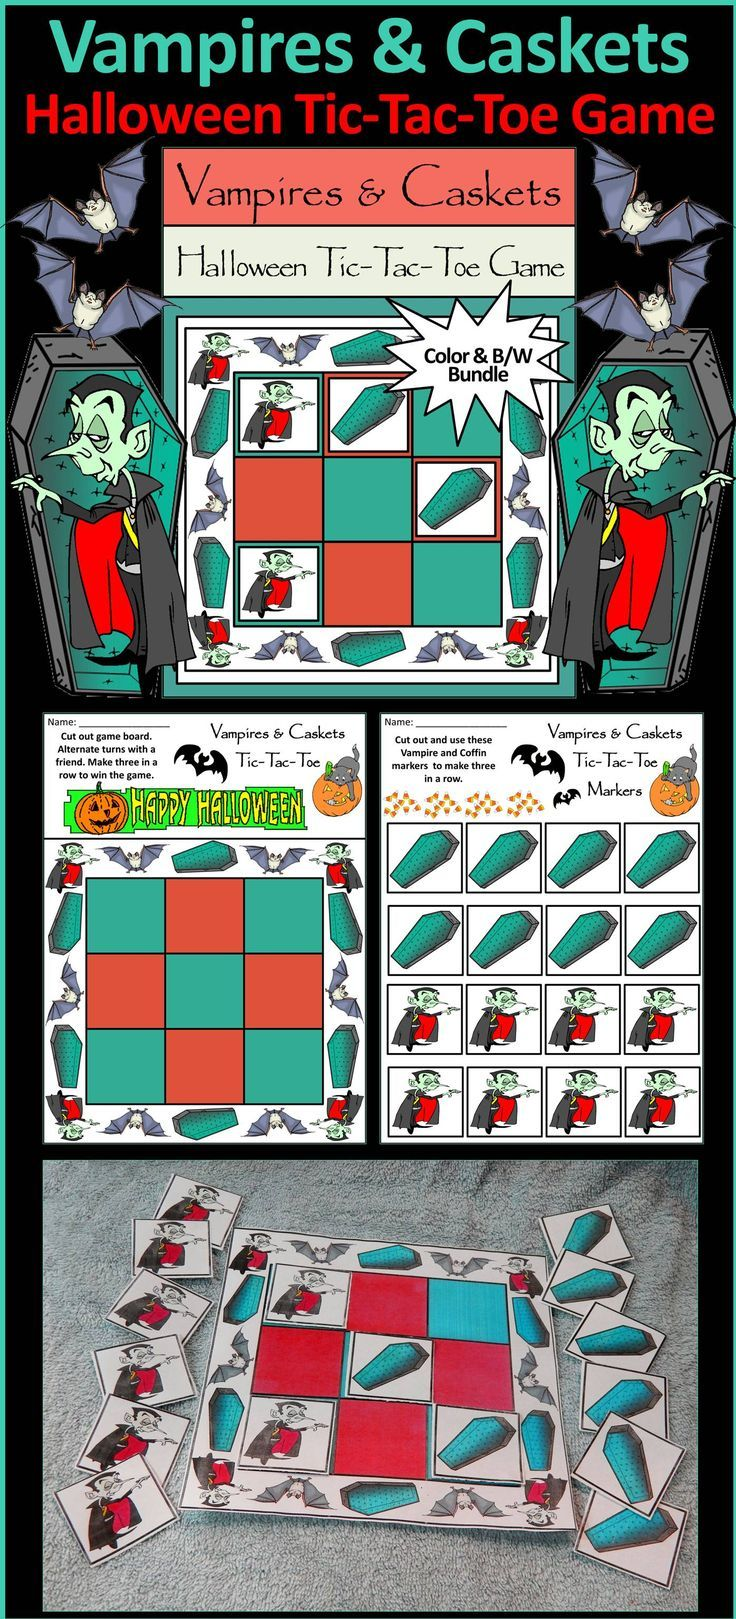 Halloween Activities:Vampires & Caskets Halloween Tic-Tac-Toe Game ...